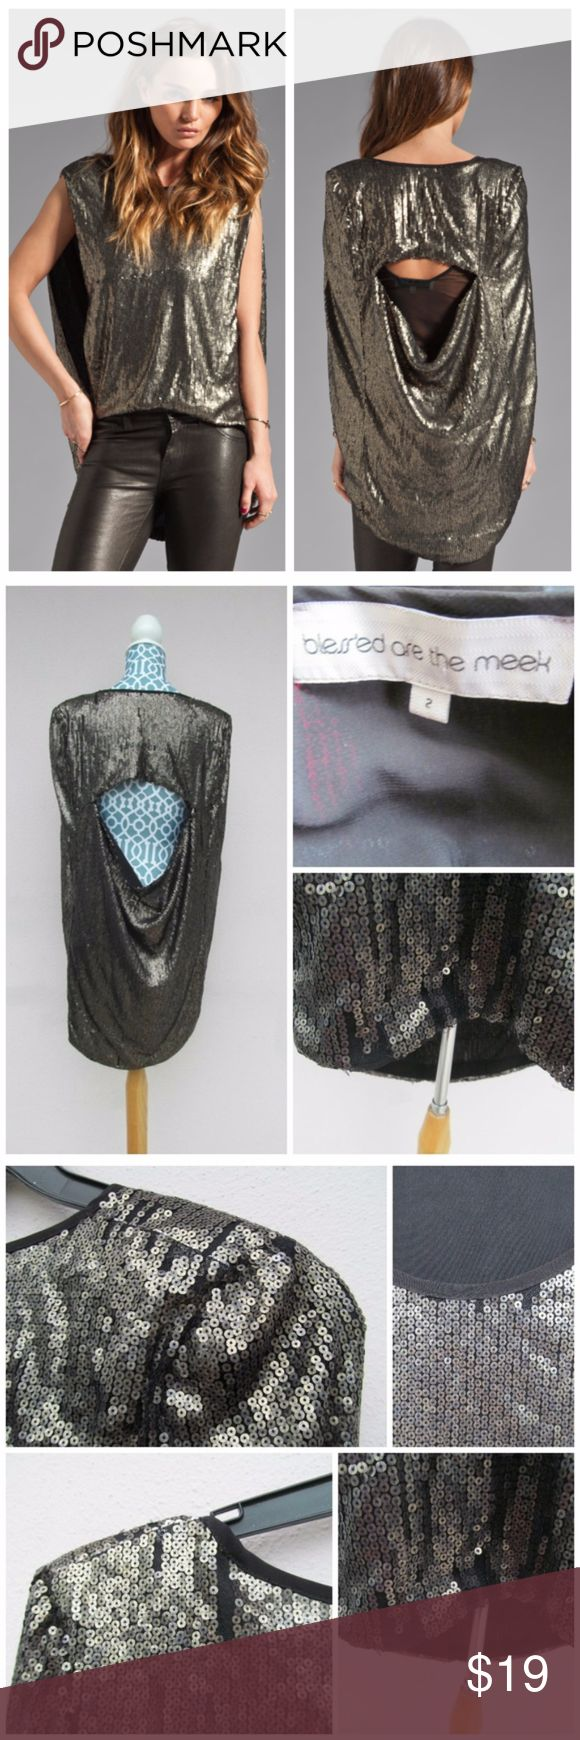 Blesse'd Are The Meek Avant Garde Sequins Top Retails over $170! Tag says size 2 but it's AU sizing so following their size chart it is a US6. Holographic sequins adorn the noise. Definitely an eye catcher with side slits and an open back. Hundreds of sequins line the blouse, there are some missing so please refer to pics but besides that this is a beautiful blouse :) Blesse'd Are The Meek Tops